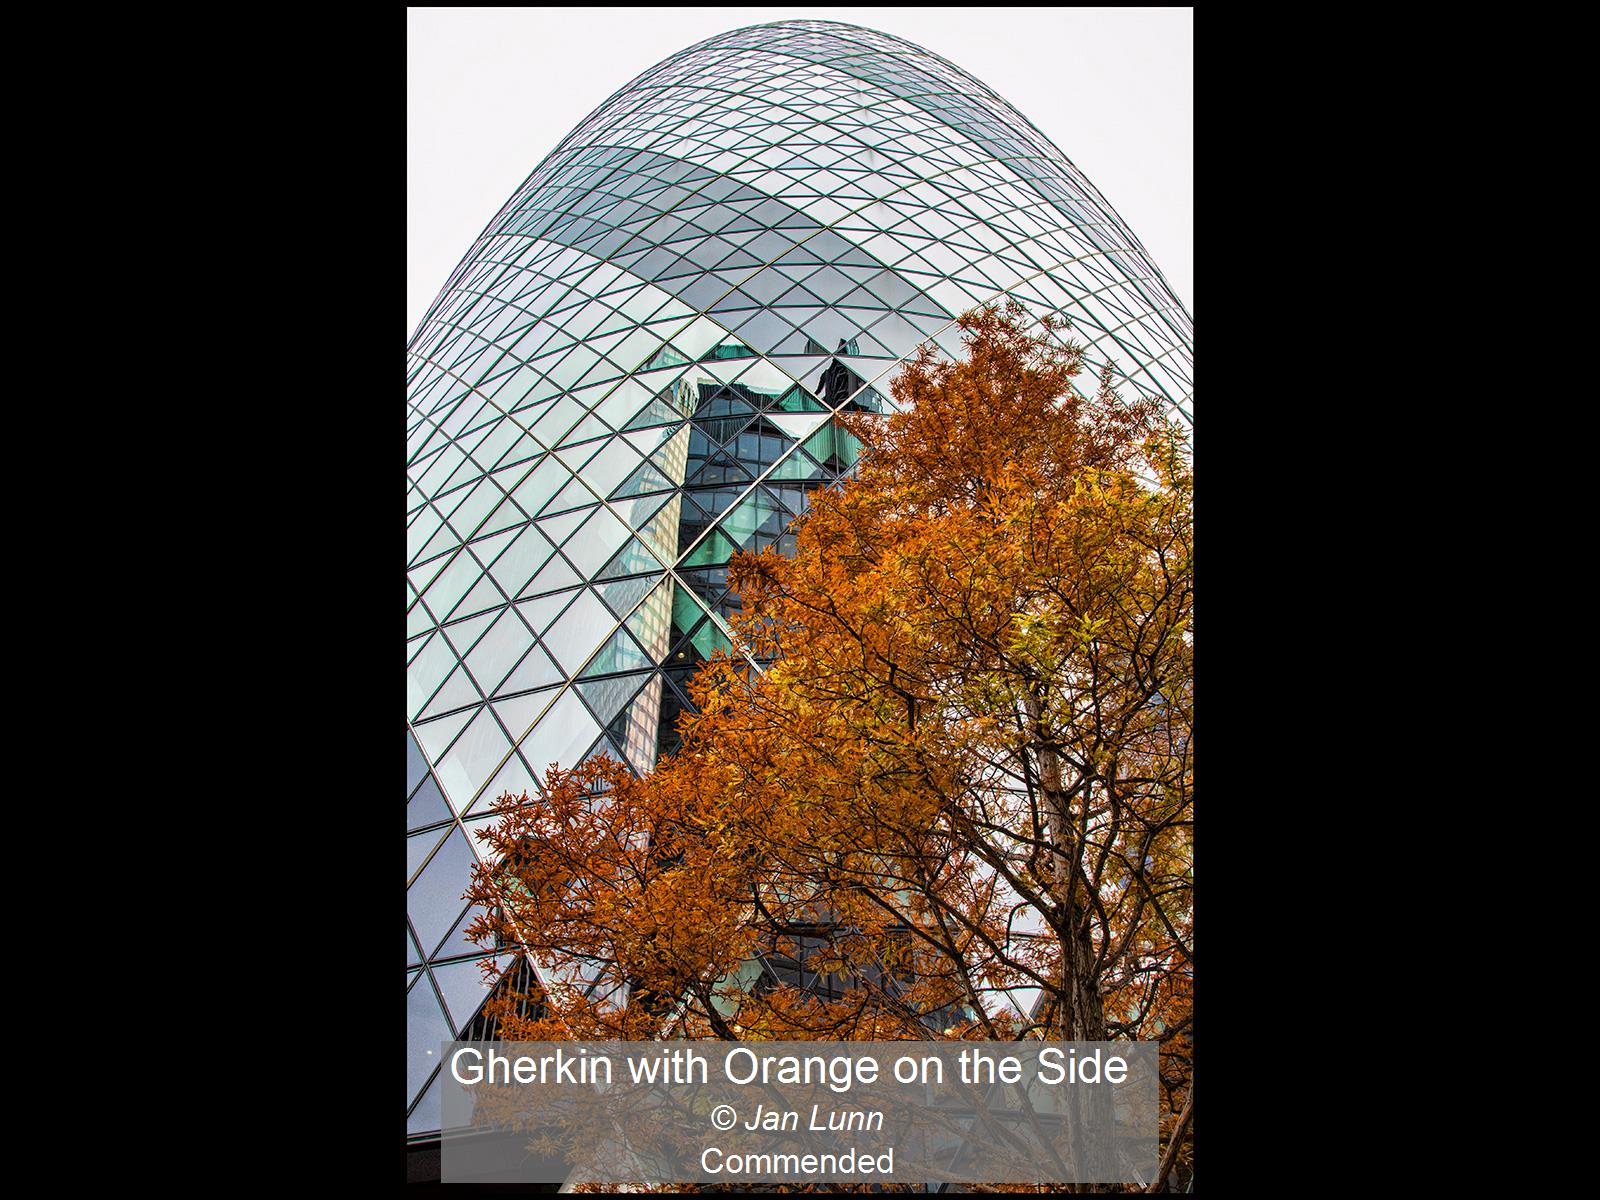 Gherkin with Orange on the Side_Jan Lunn